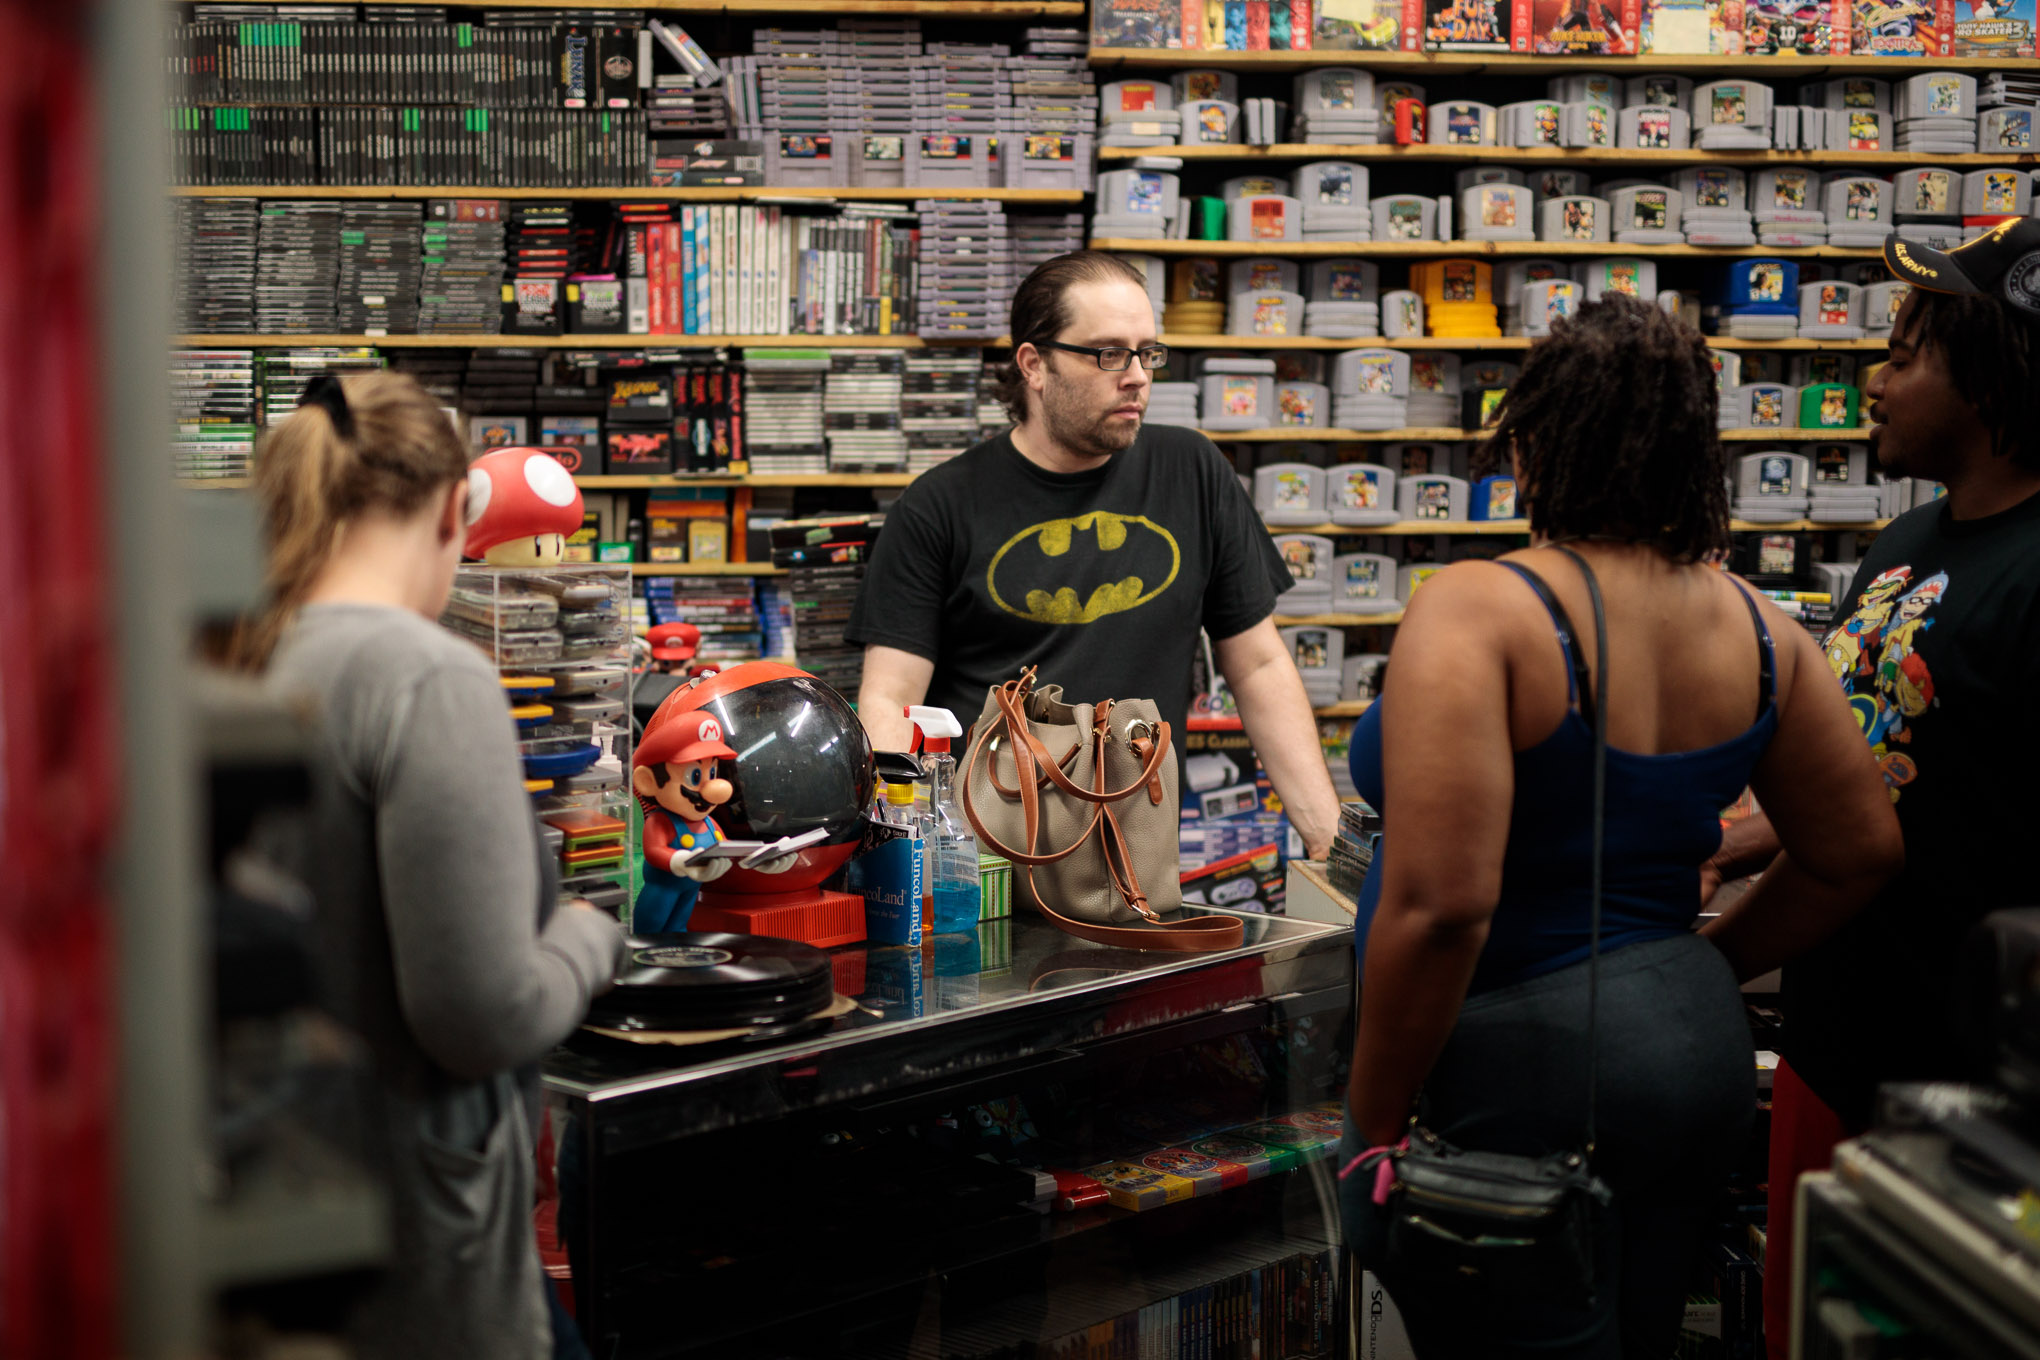 AJ Martinez attends to customers of his video game shop Propaganda Palace, which originally started as his personal collection.